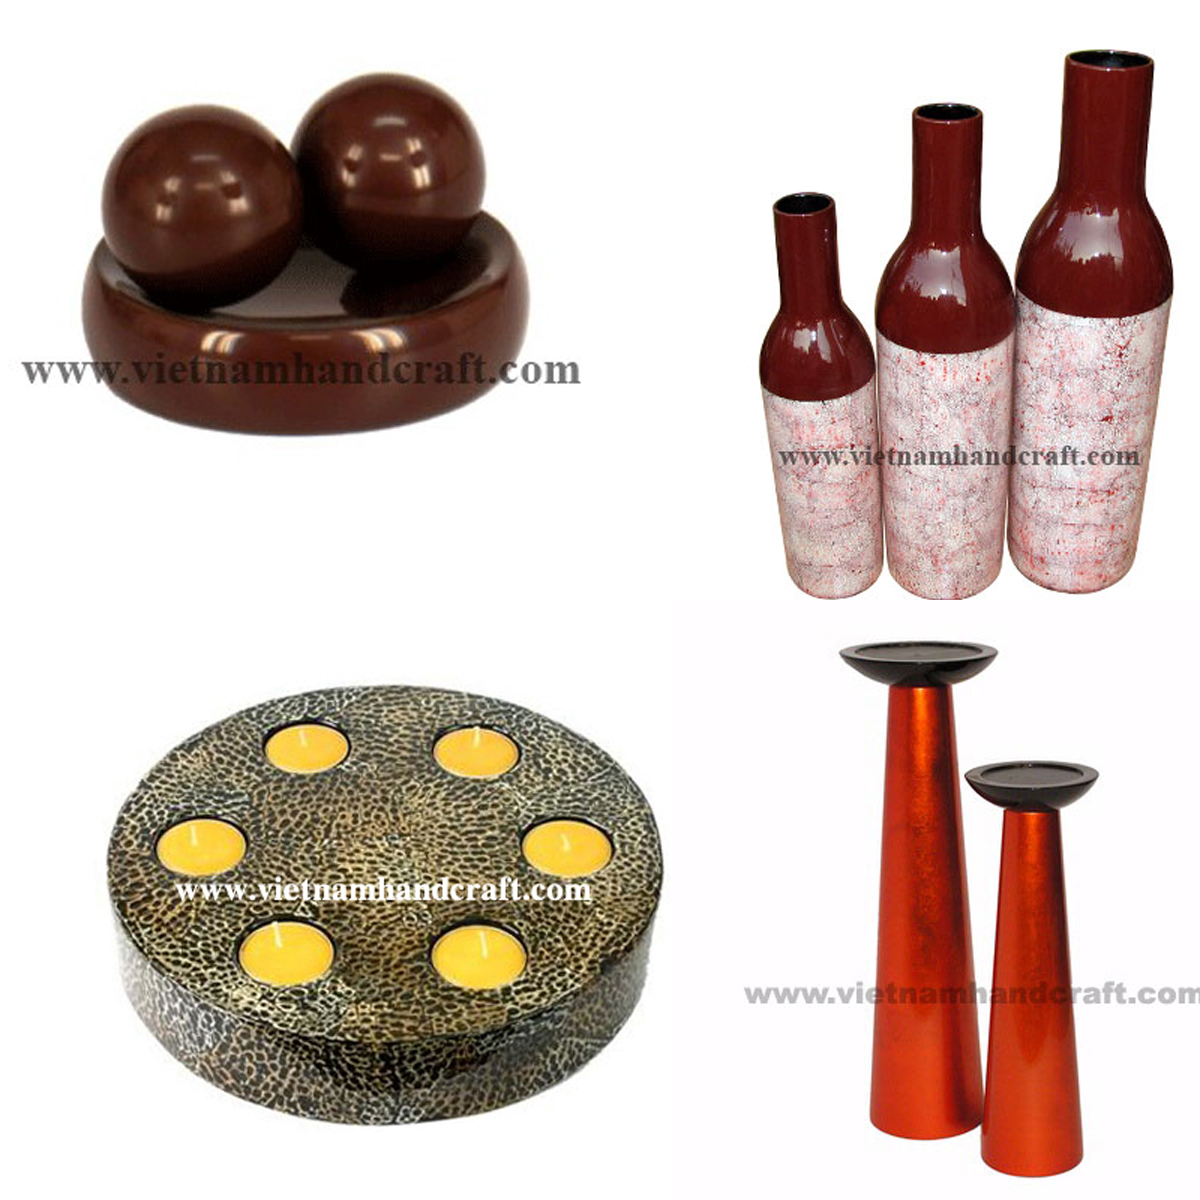 Handcrafted Indonesian Gifts And Tableware And Decorative Home Accents And  Home Decor Accessories Products Suppliers